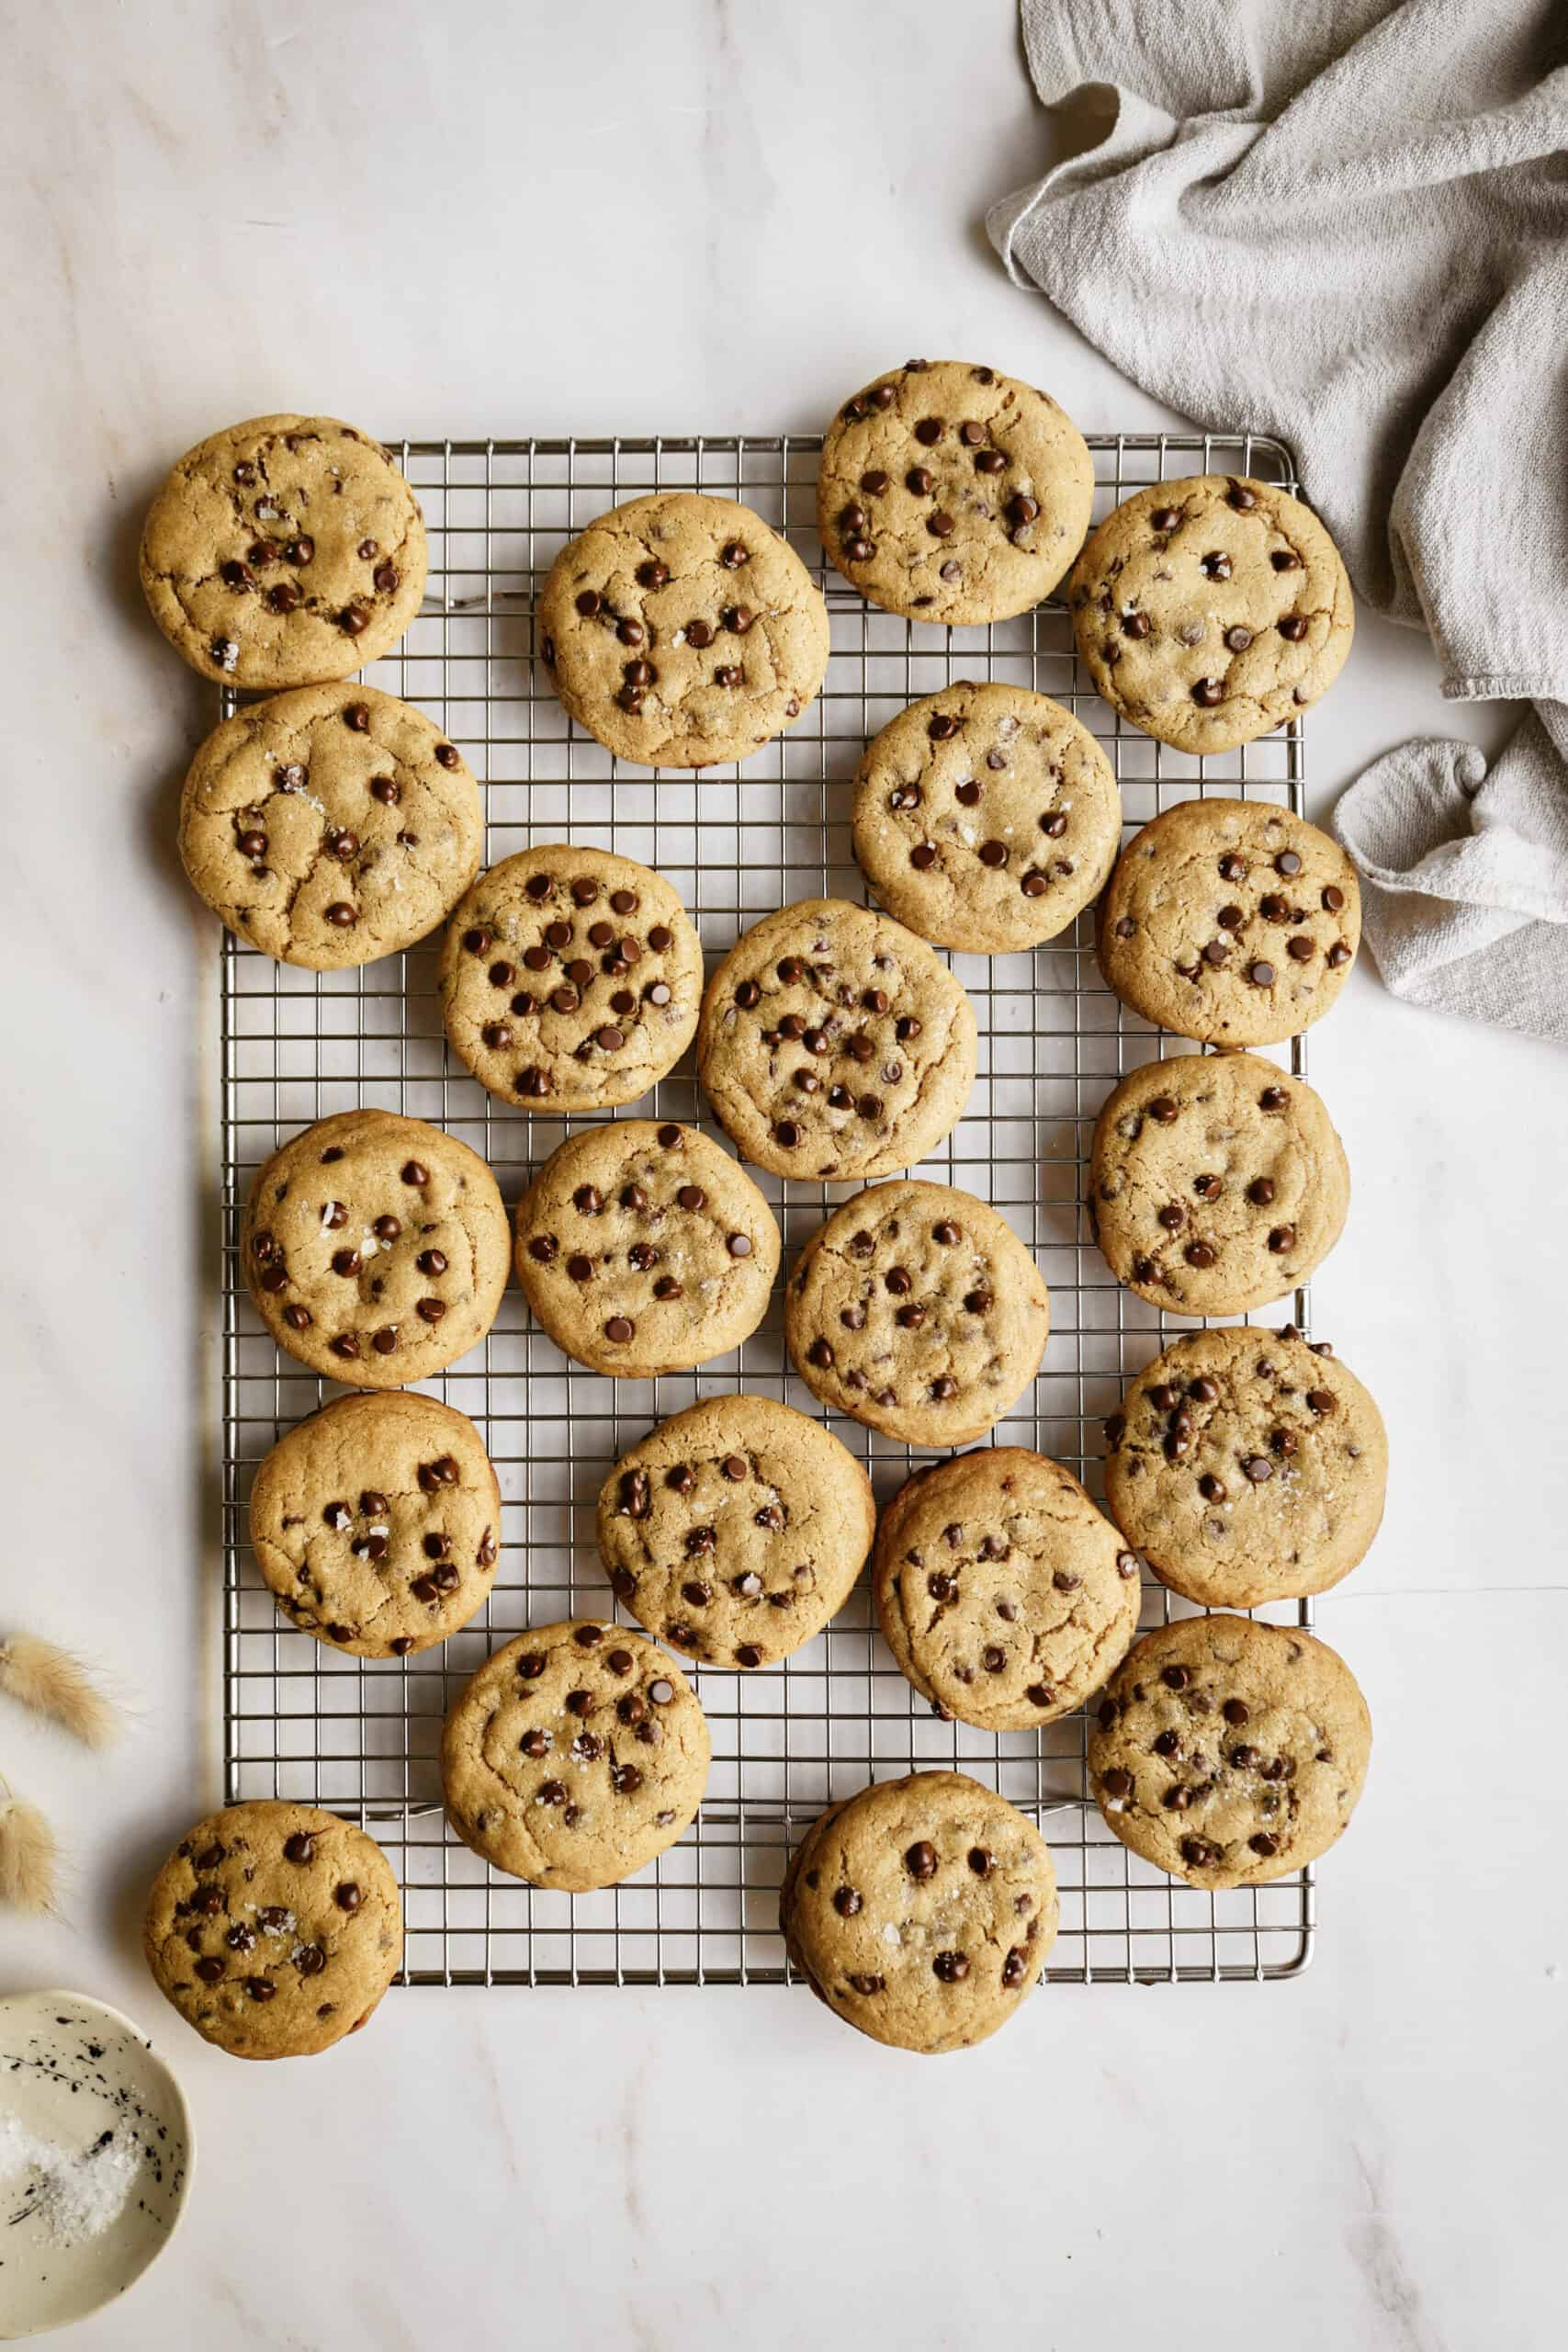 Homemade chocolate chip cookies on a cooling rack